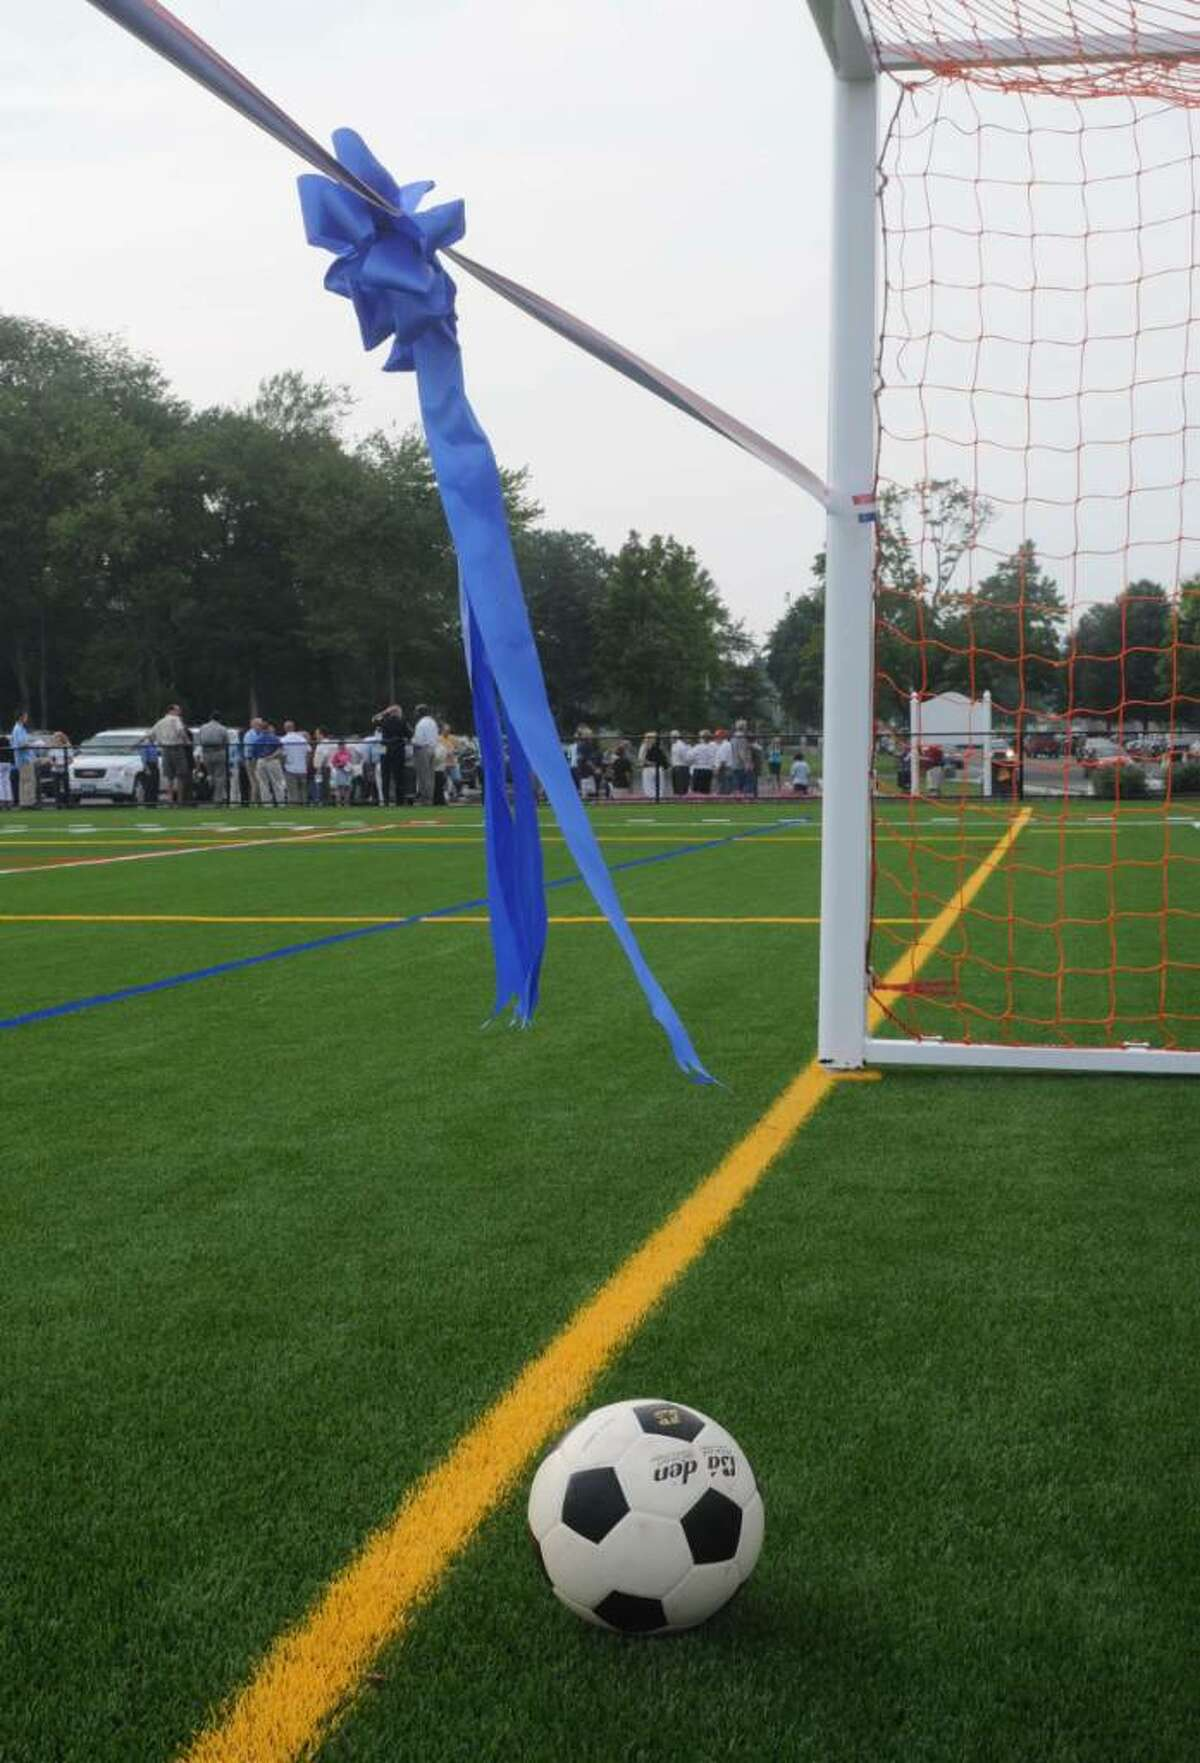 The ceremonial ribbon and soccer ball wait as the dedication ceremony takes place in the background. The John Perry Memorial Field was dedicated on Wednesday at Rogers Park in Danbury.